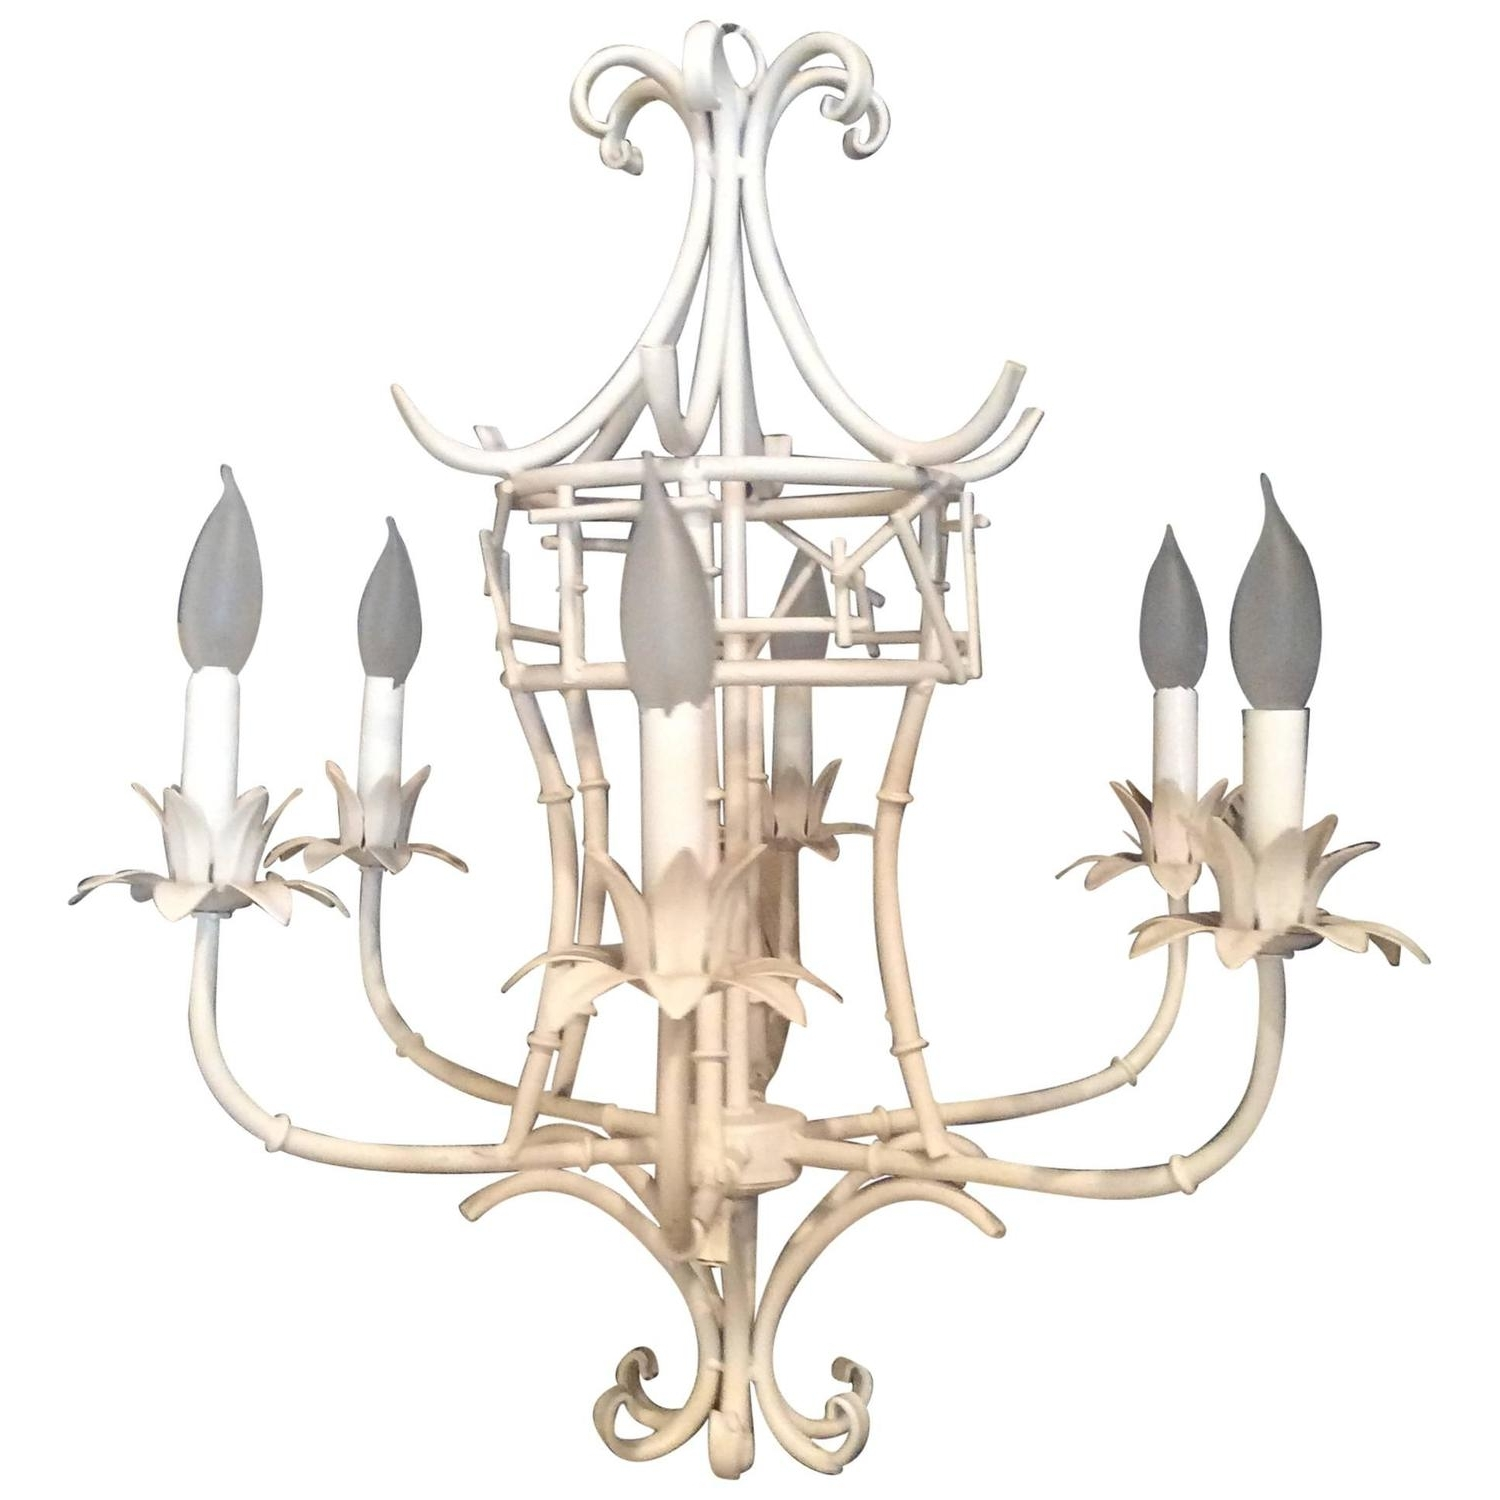 Most Recent Chinese Chandeliers Inside Pagoda Chandeliers – 69 For Sale On 1Stdibs (View 9 of 15)